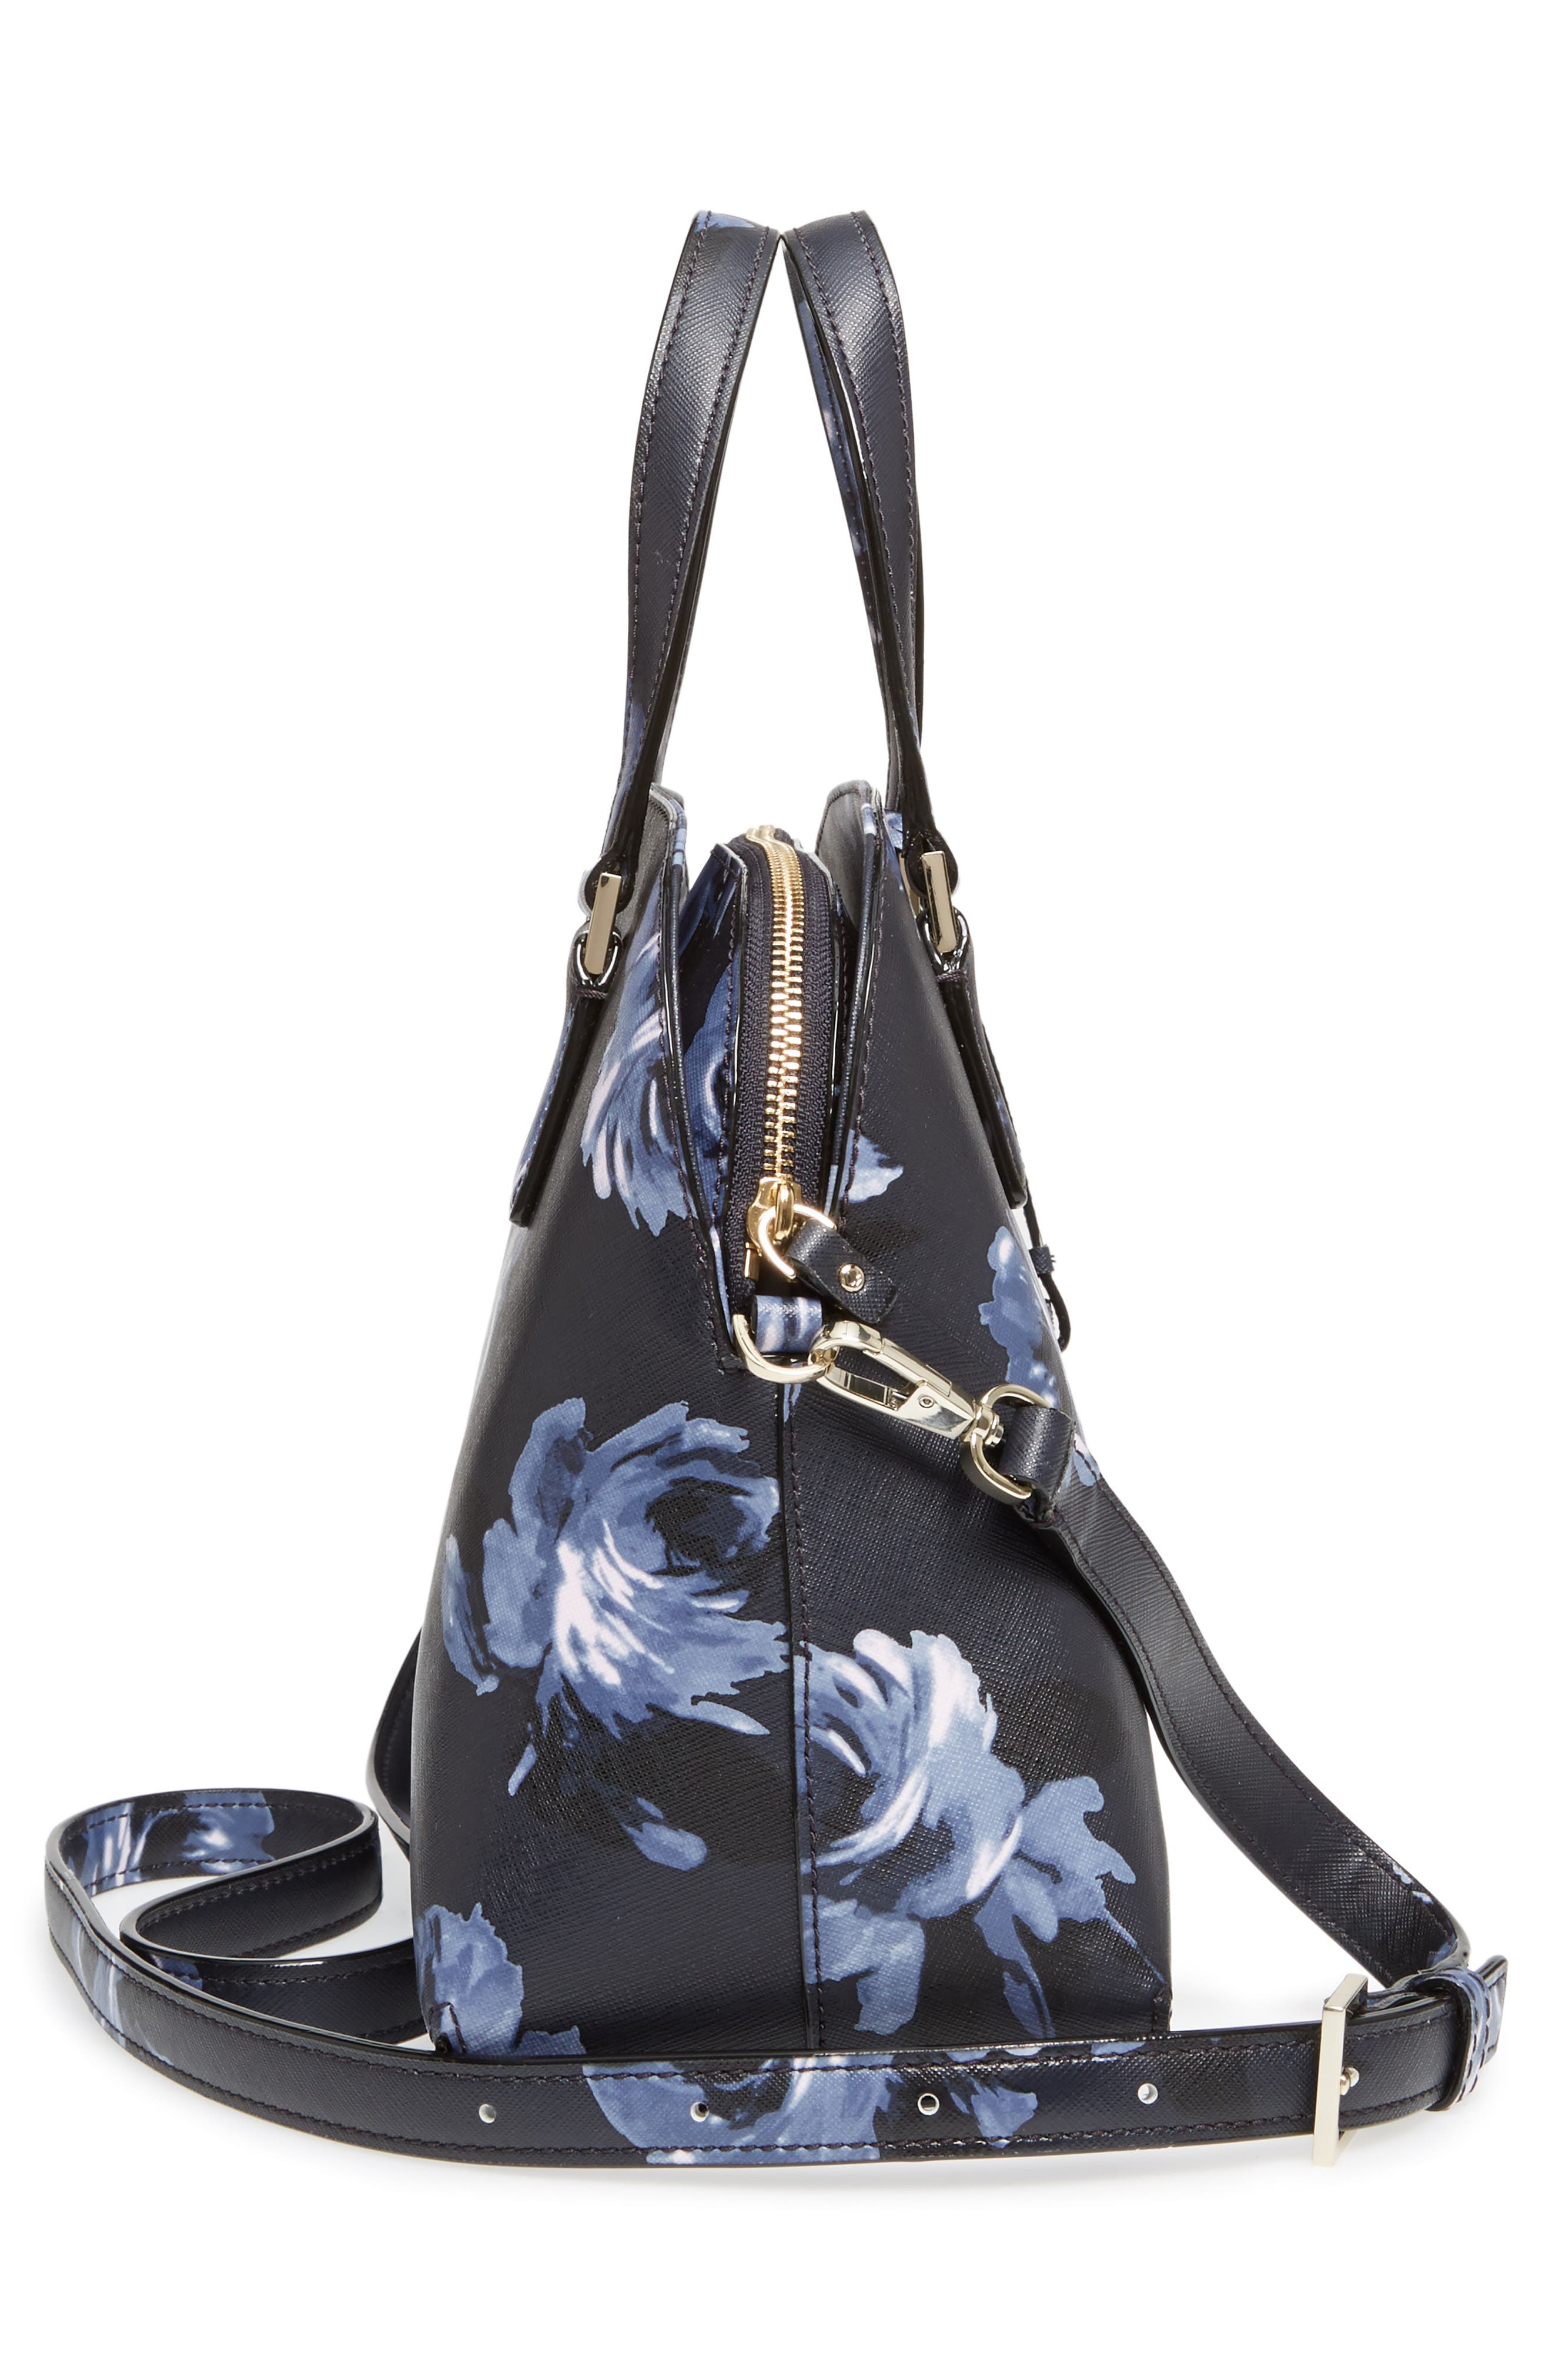 cameron street lottie floral faux leather satchel,                             Alternate thumbnail 5, color,                             Rich Navy Multi